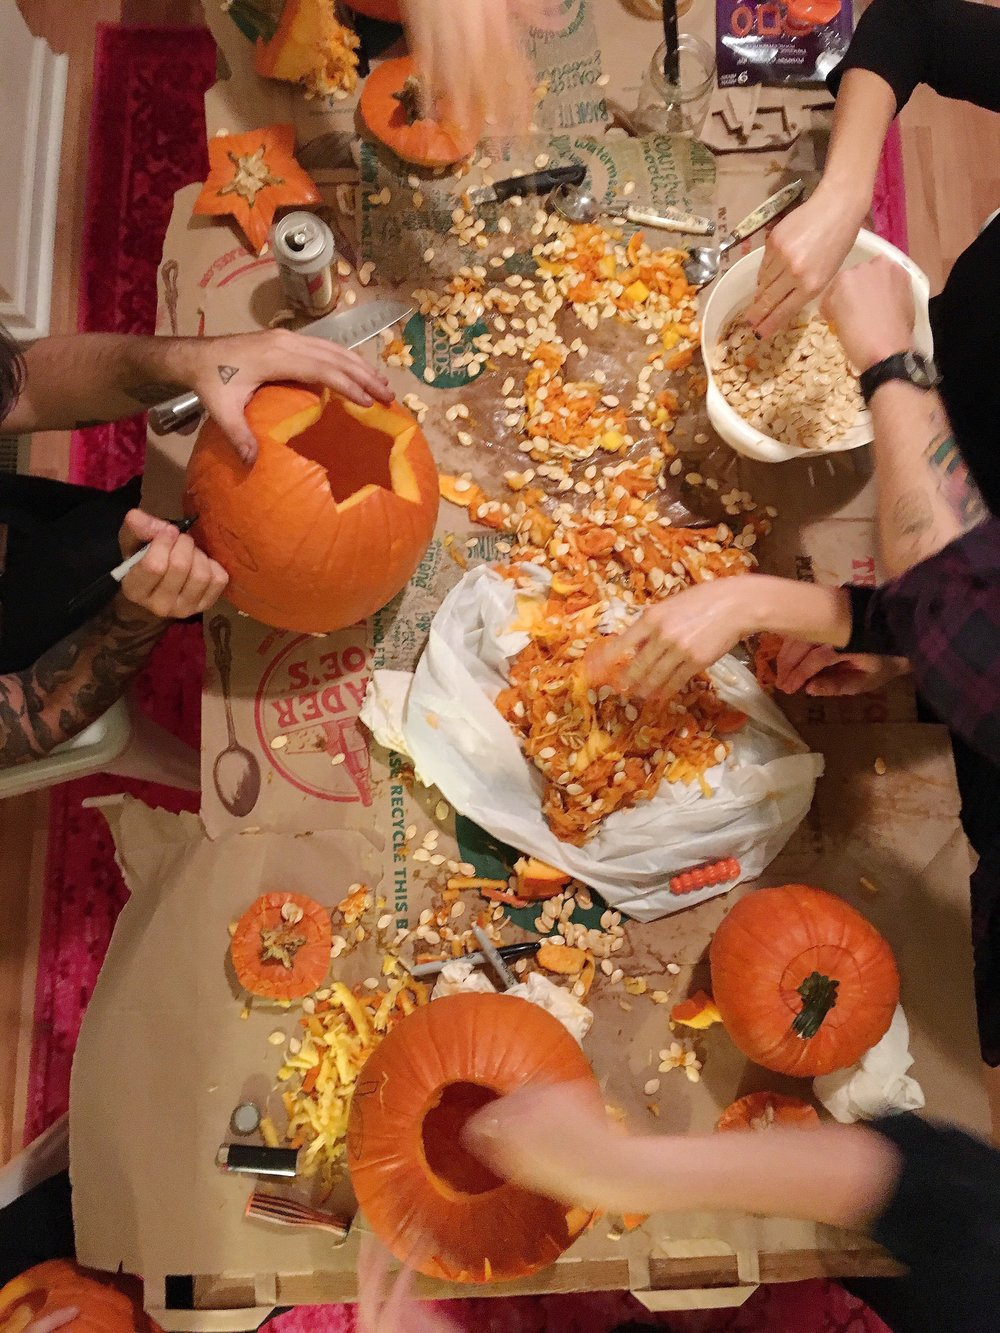 Pumpkin Carving Party via Unusually Lovely